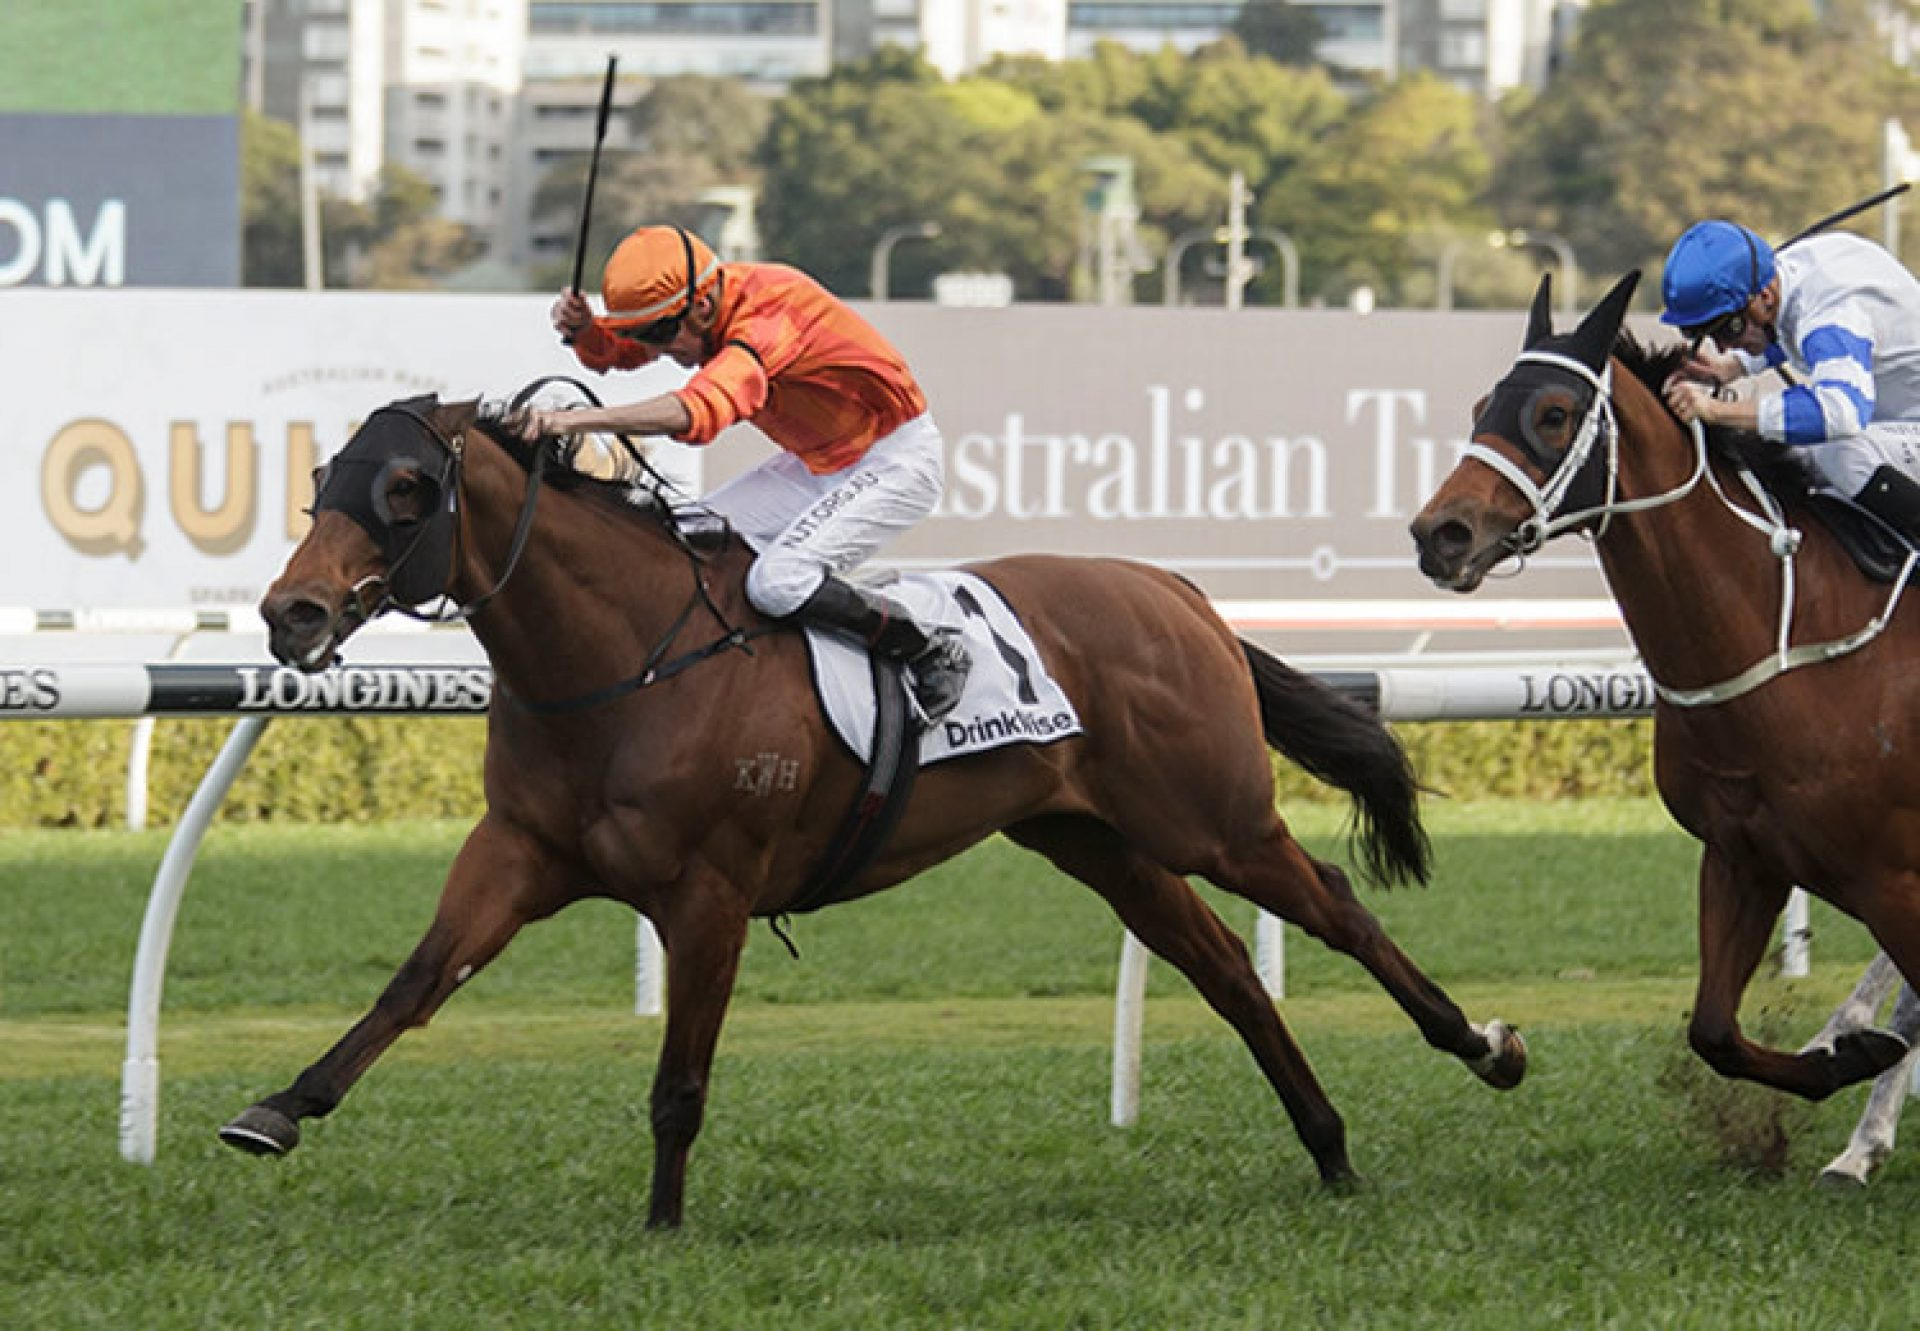 Dreamforce (Fastnet Rock) wins the Gr.2 ATC Tramway Stakes at Randwick